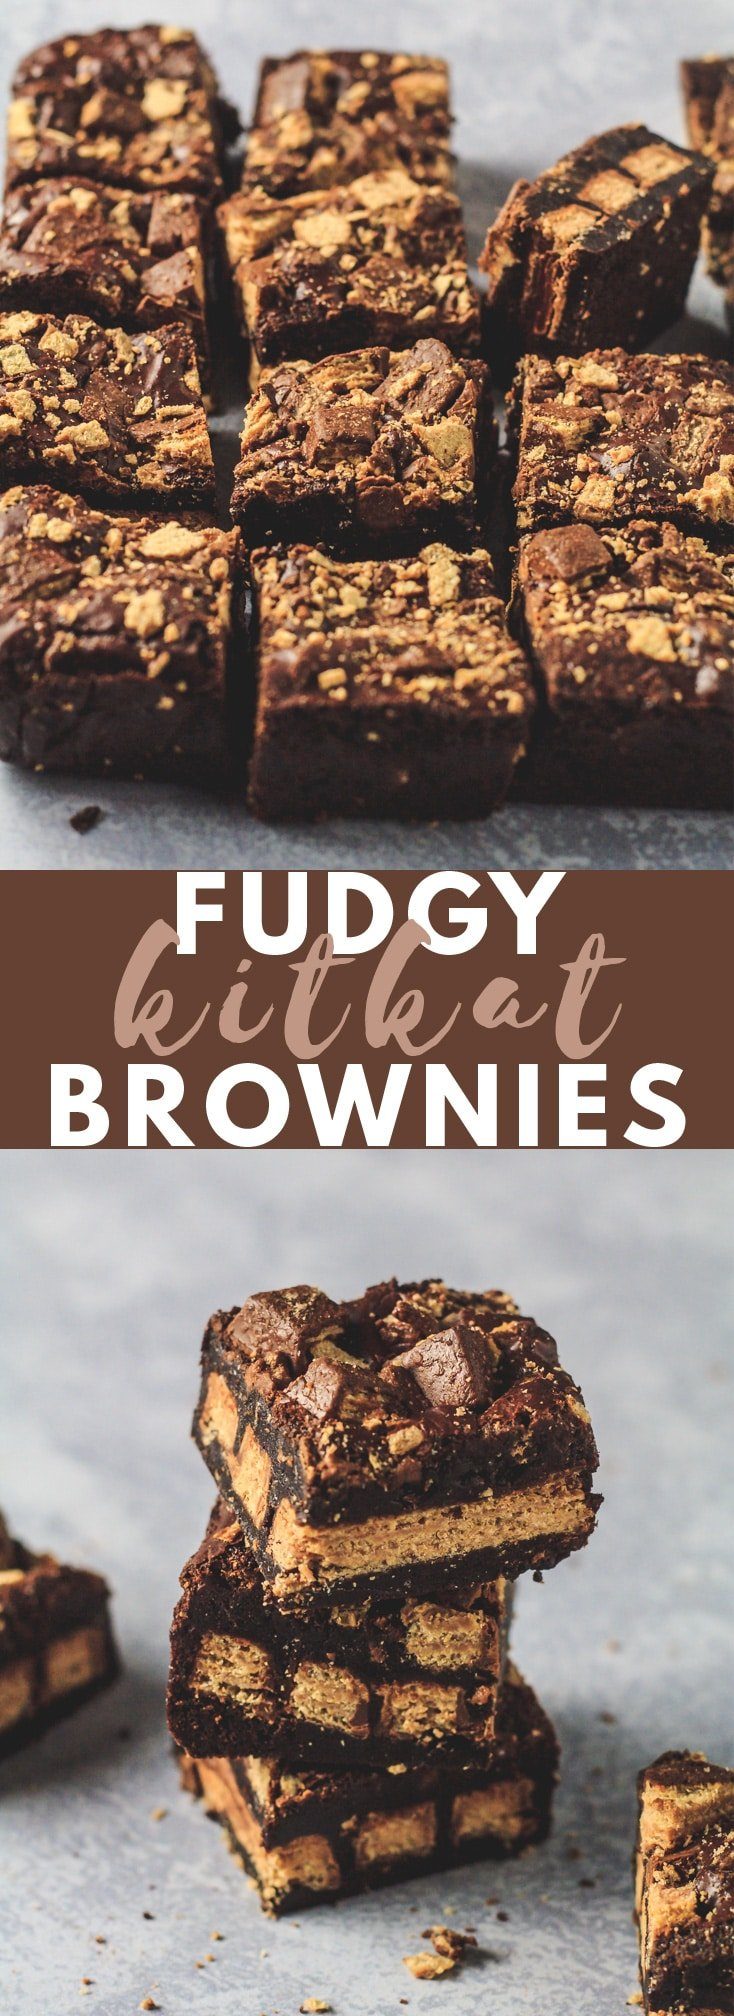 Fudgy KitKat Brownies - Deliciously thick and fudgy chocolate brownies that are stuffed with whole KitKats, and generously topped with broken KitKats! #brownies